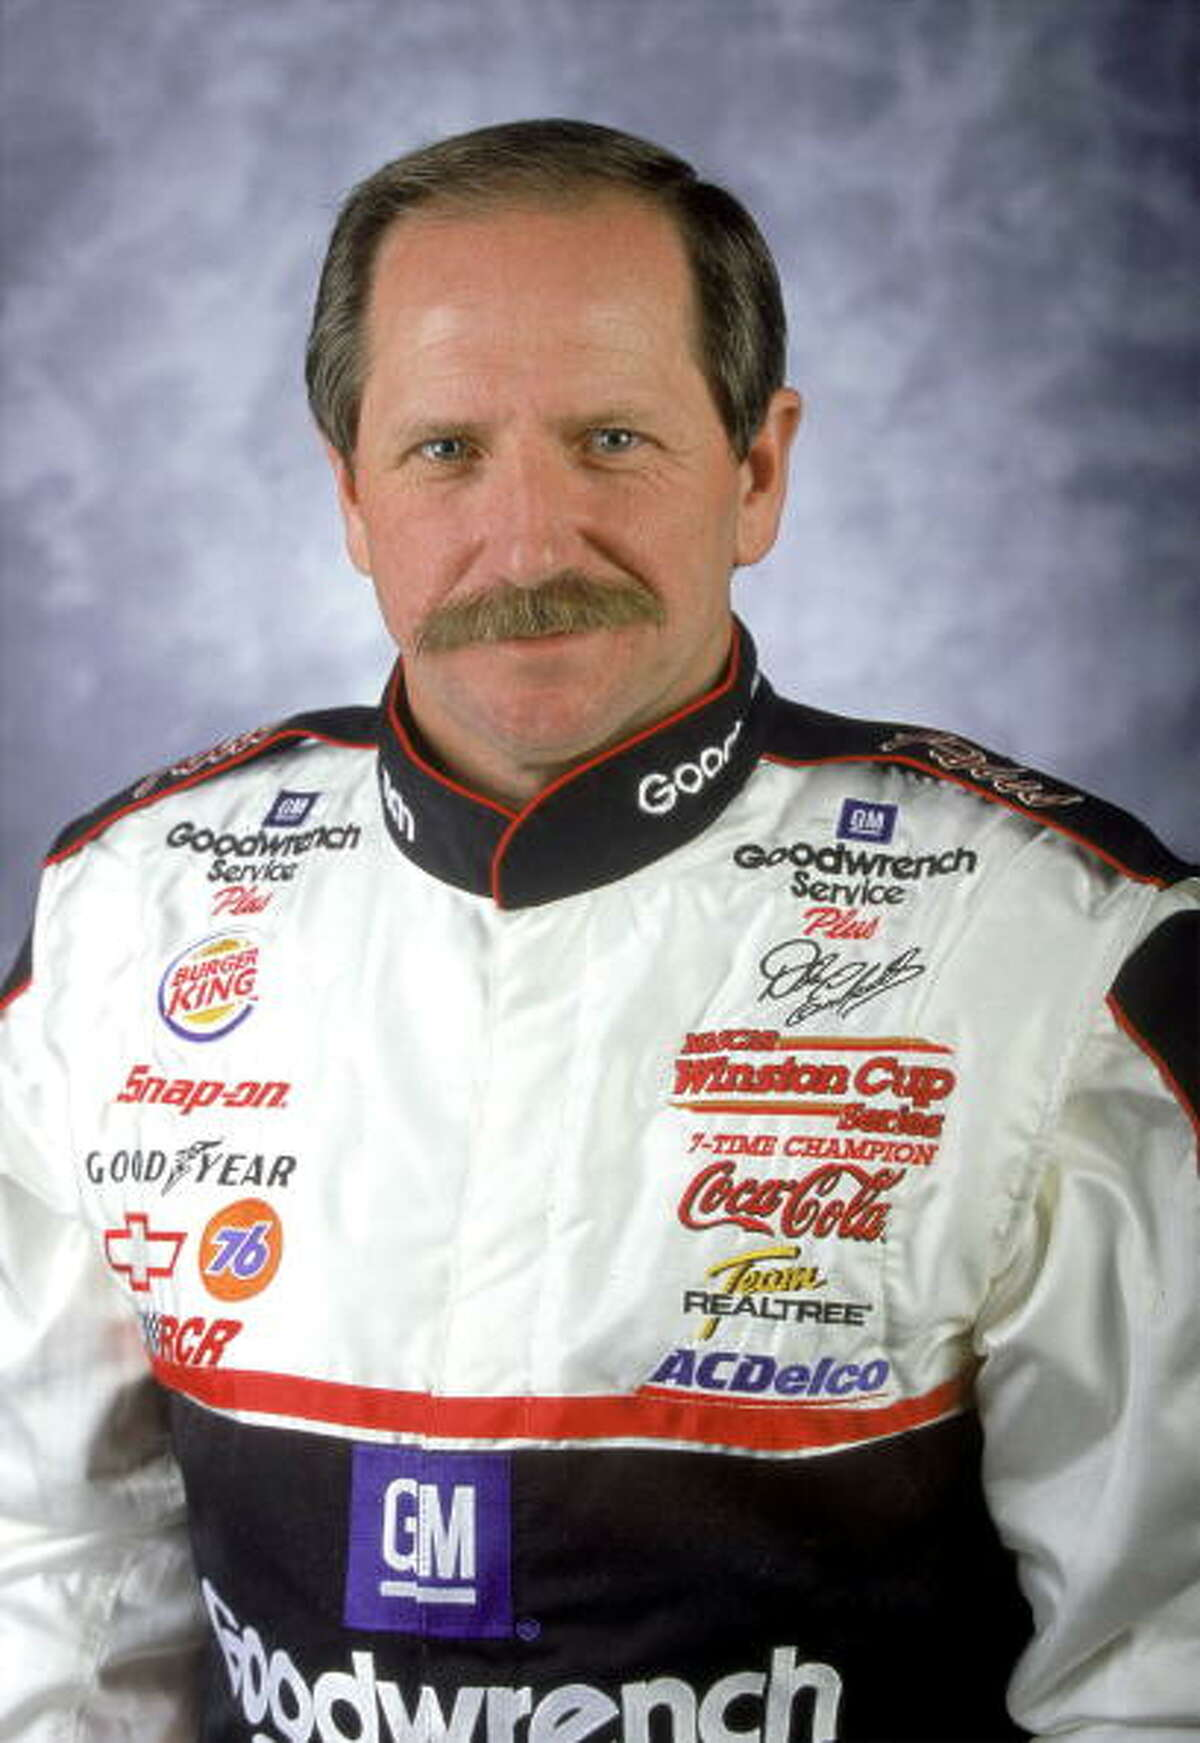 Dale Earnhardt The seven-time champion NASCAR driver raced for the last time in the 2001 Daytona 500 race. Earnhardt crashed into a wall during the final lap of the race which his son Dale Earnhardt, Jr. was also competing in.